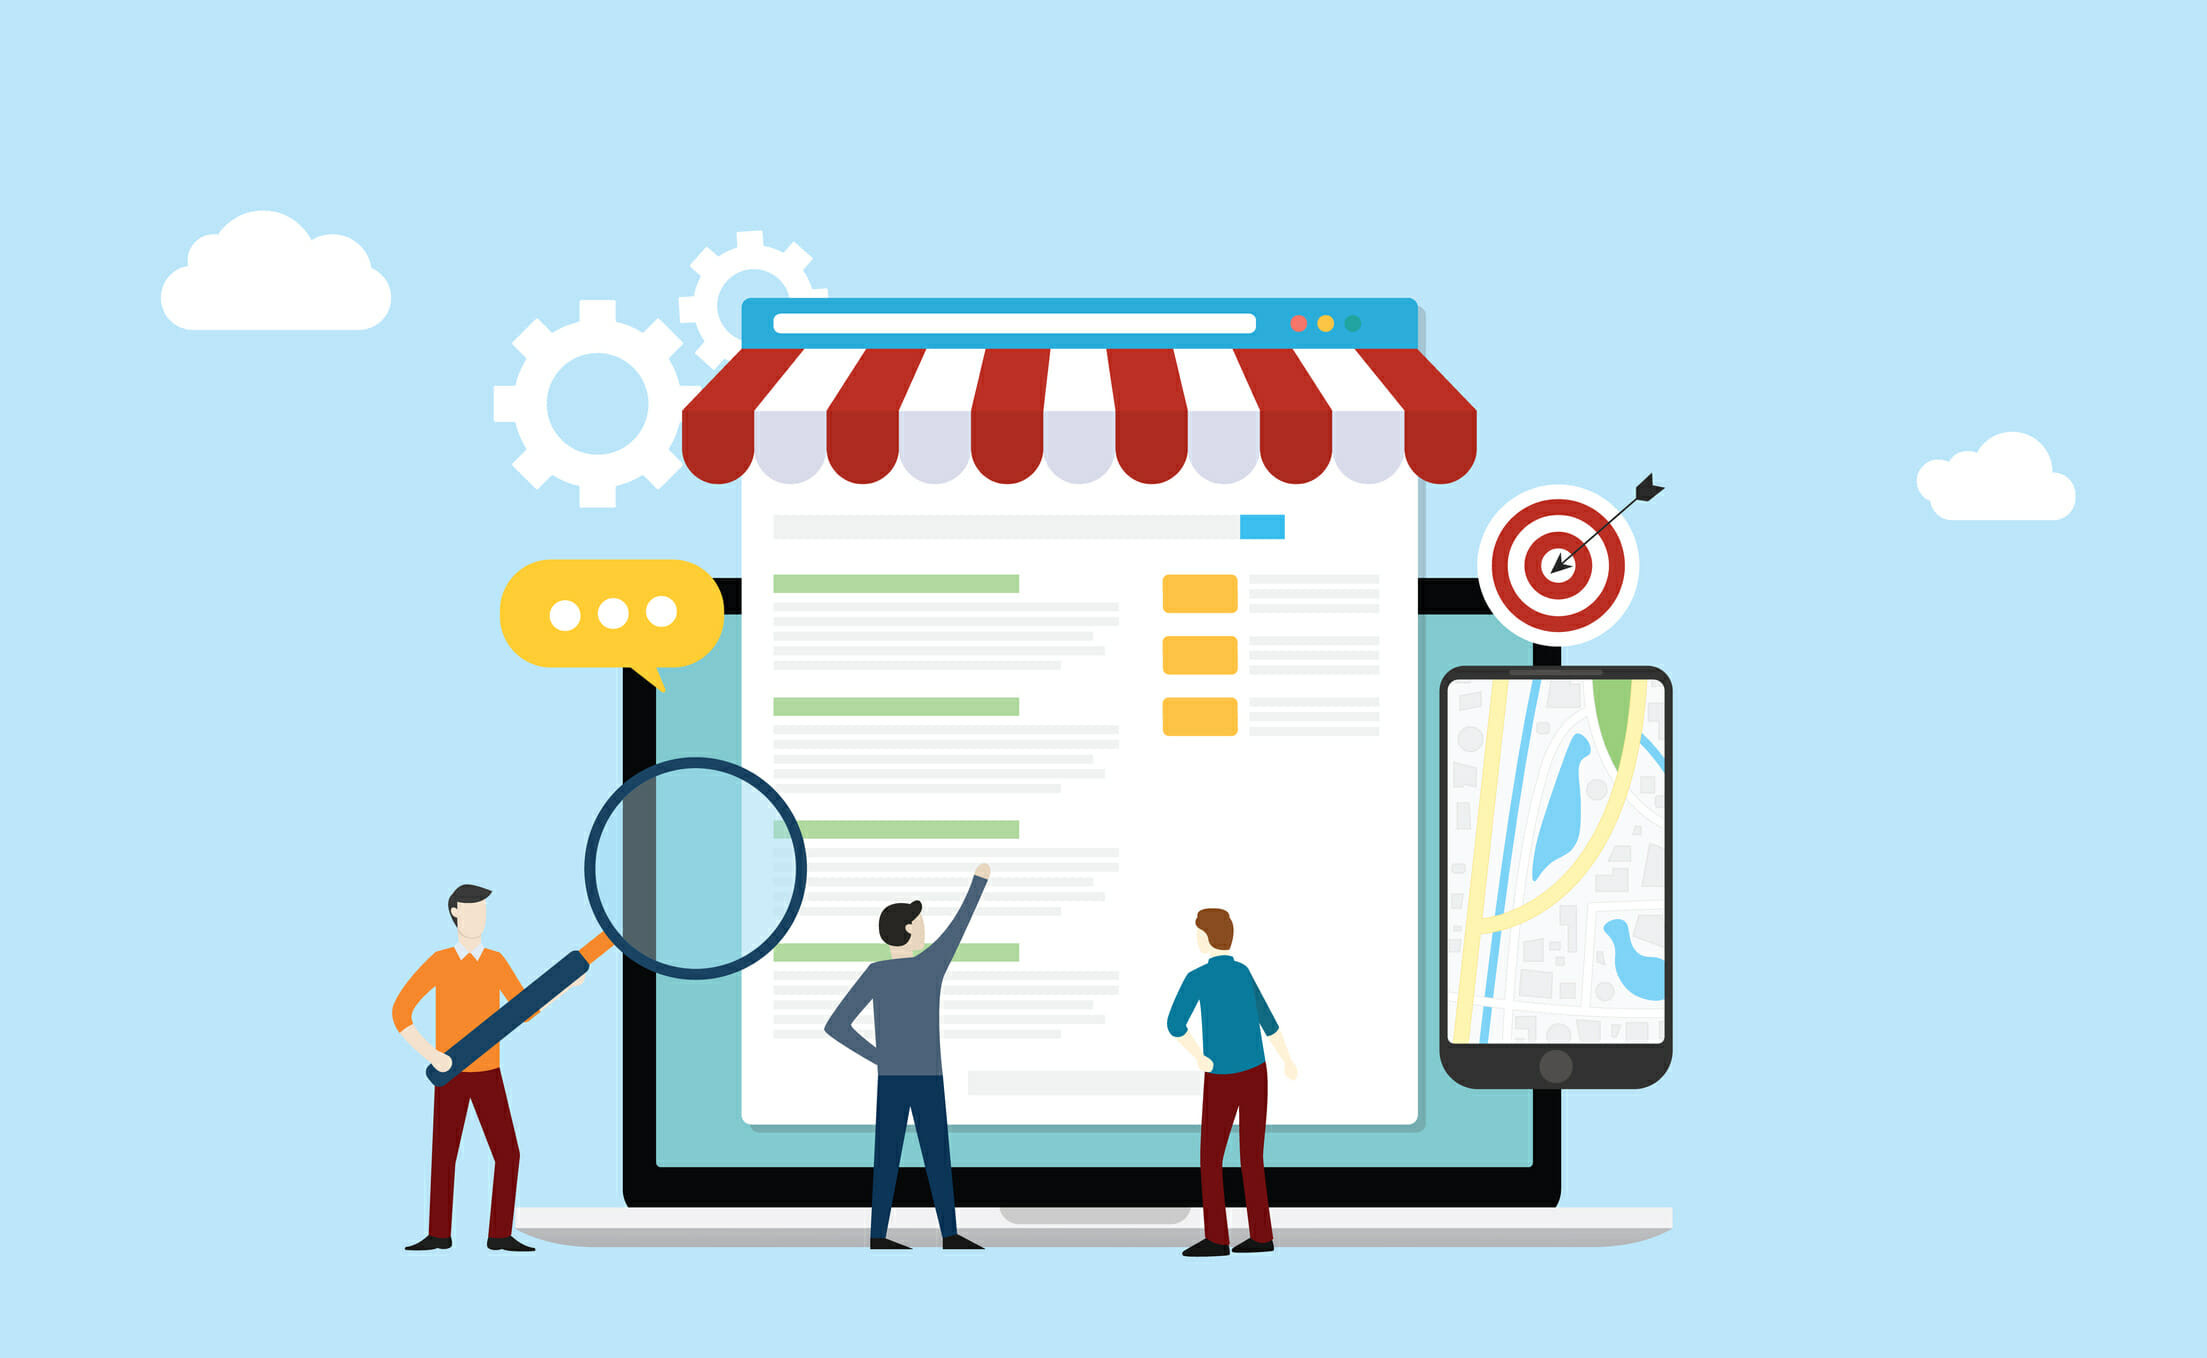 local seo market strategy business search engine optimization with team people working together on front of store and maps online – vector